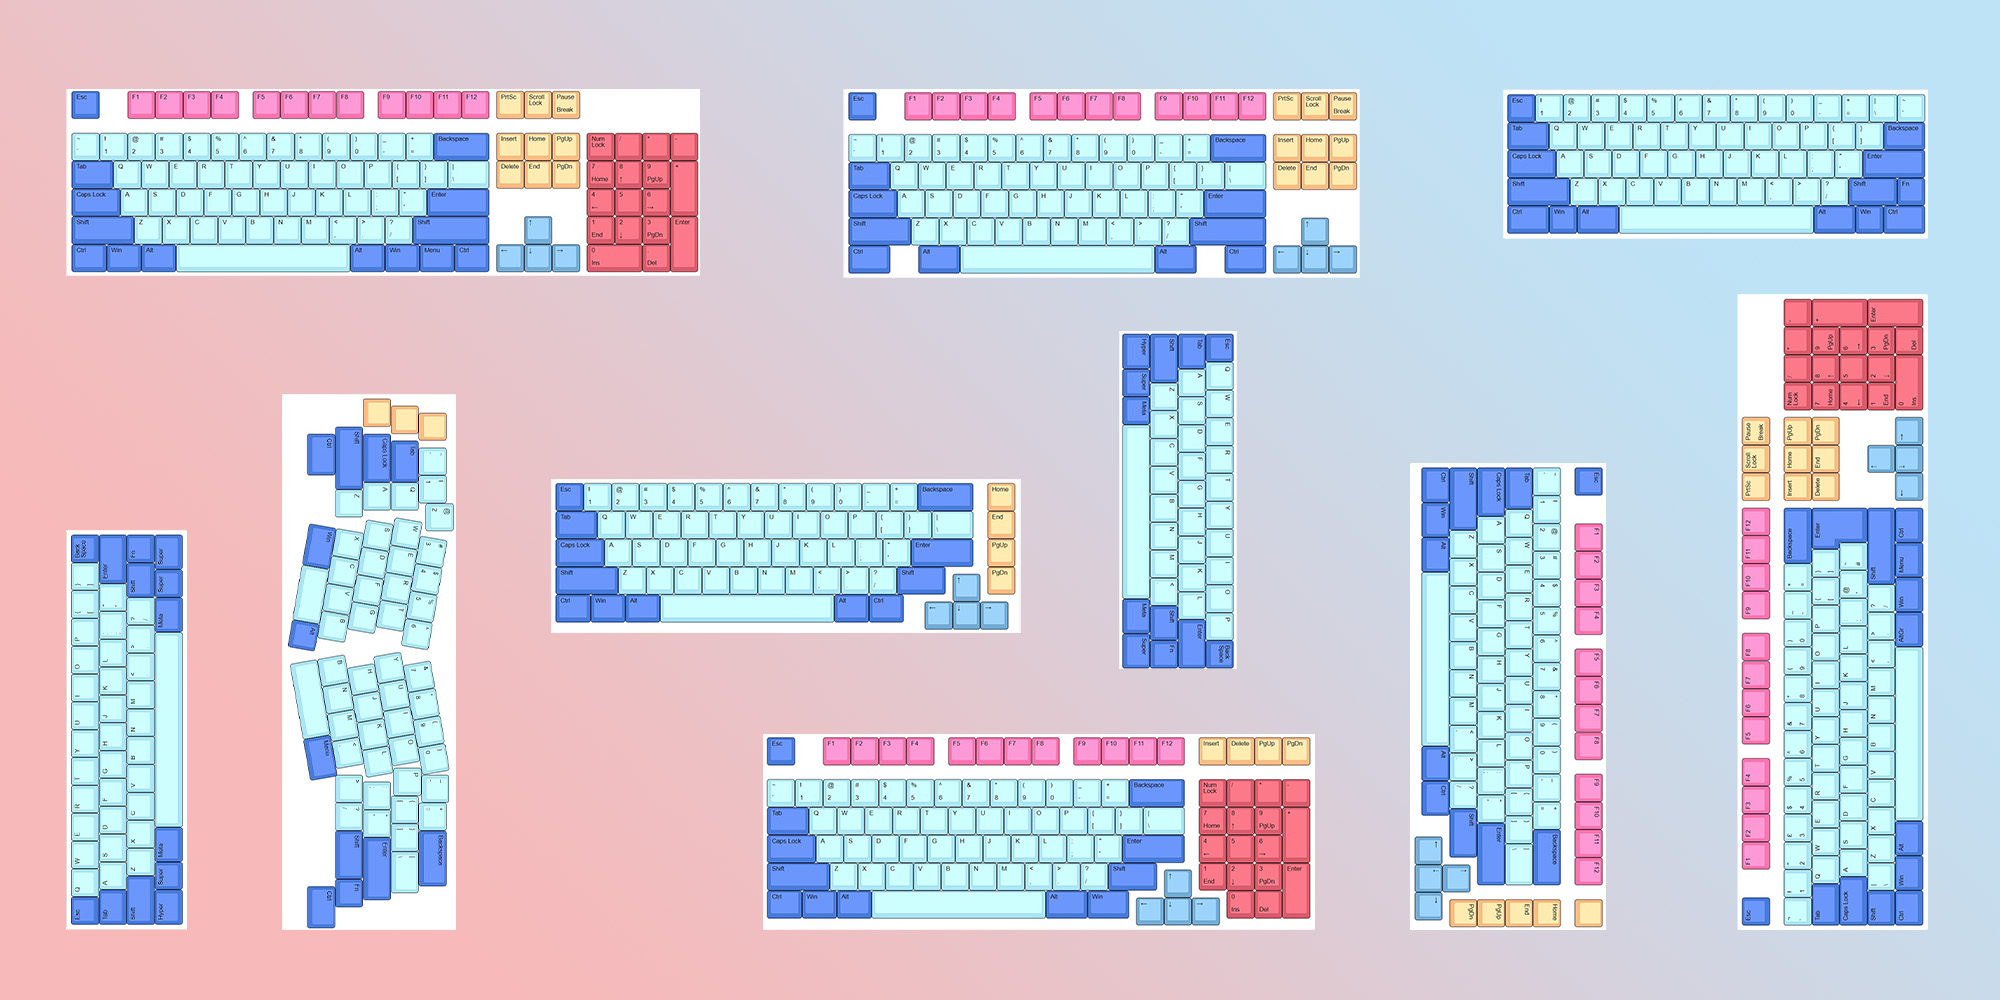 Layouts - Keyboard layouts, and how not to get lost in them [Keyboard layout guide]